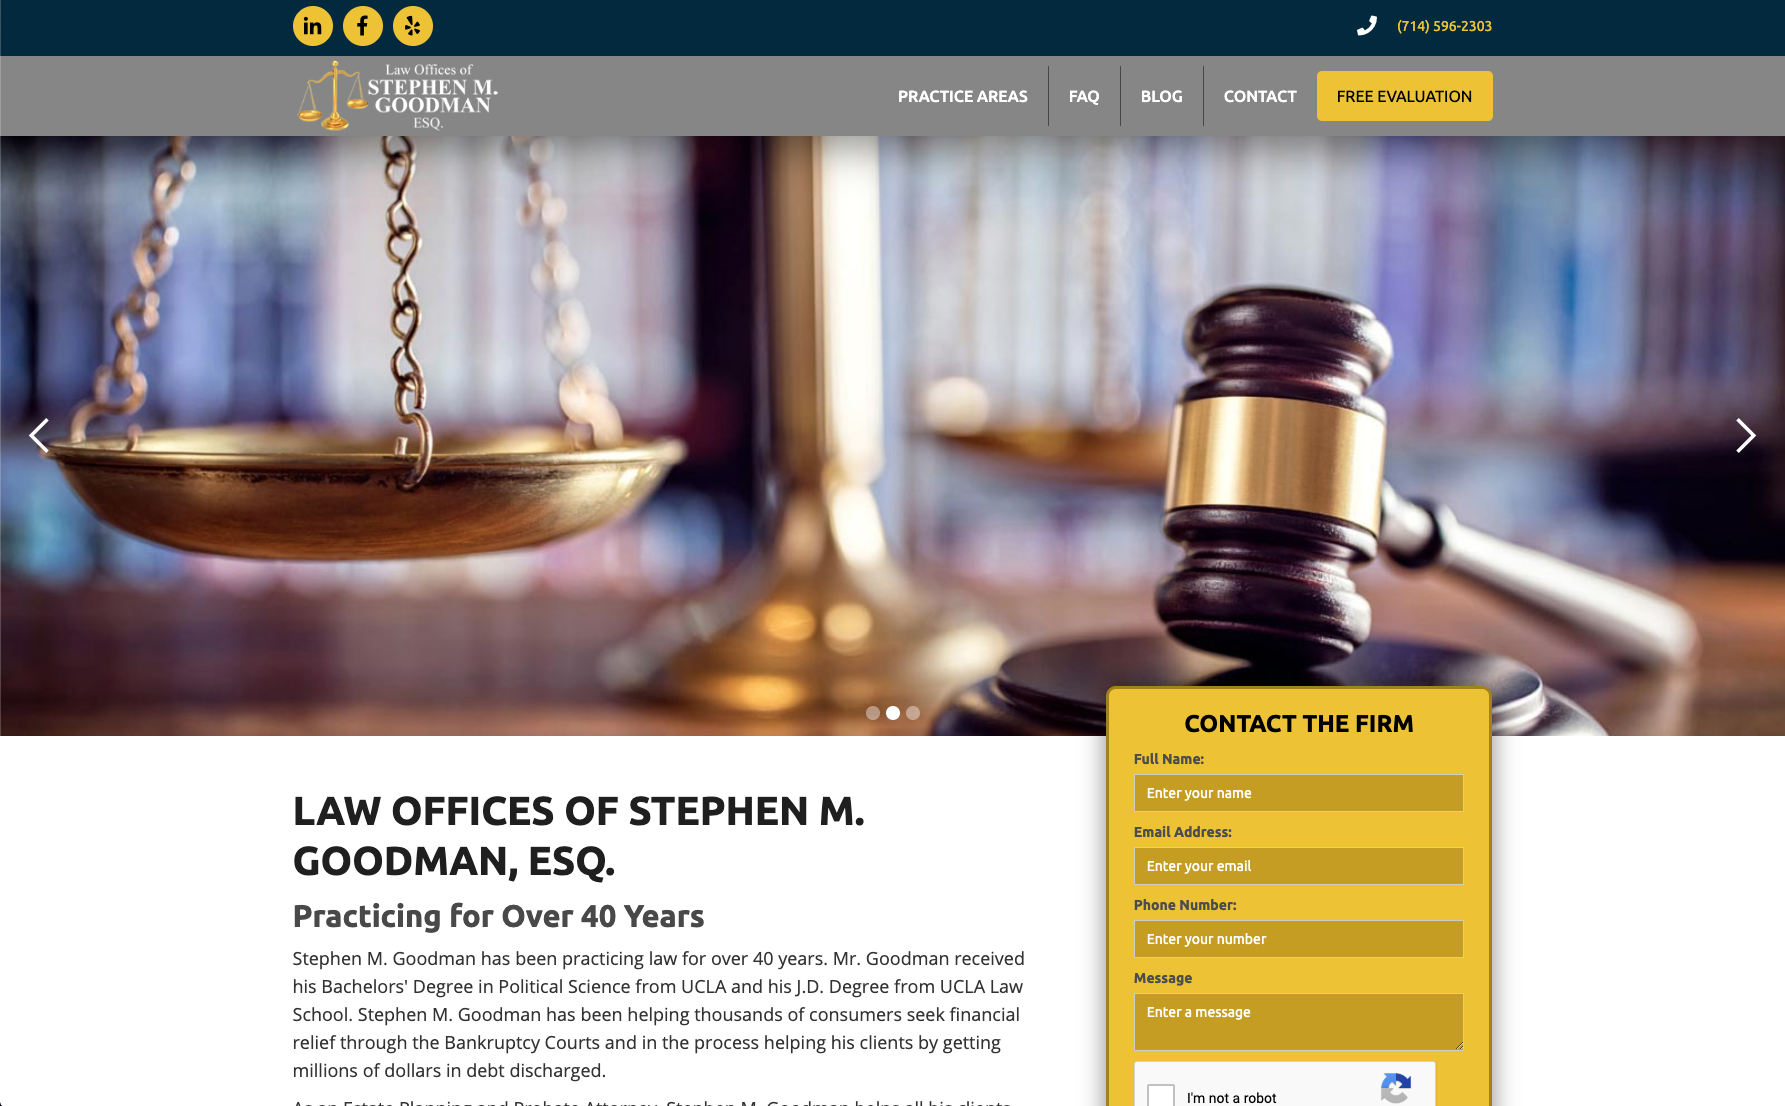 Law offices of stephen gooman website across screens